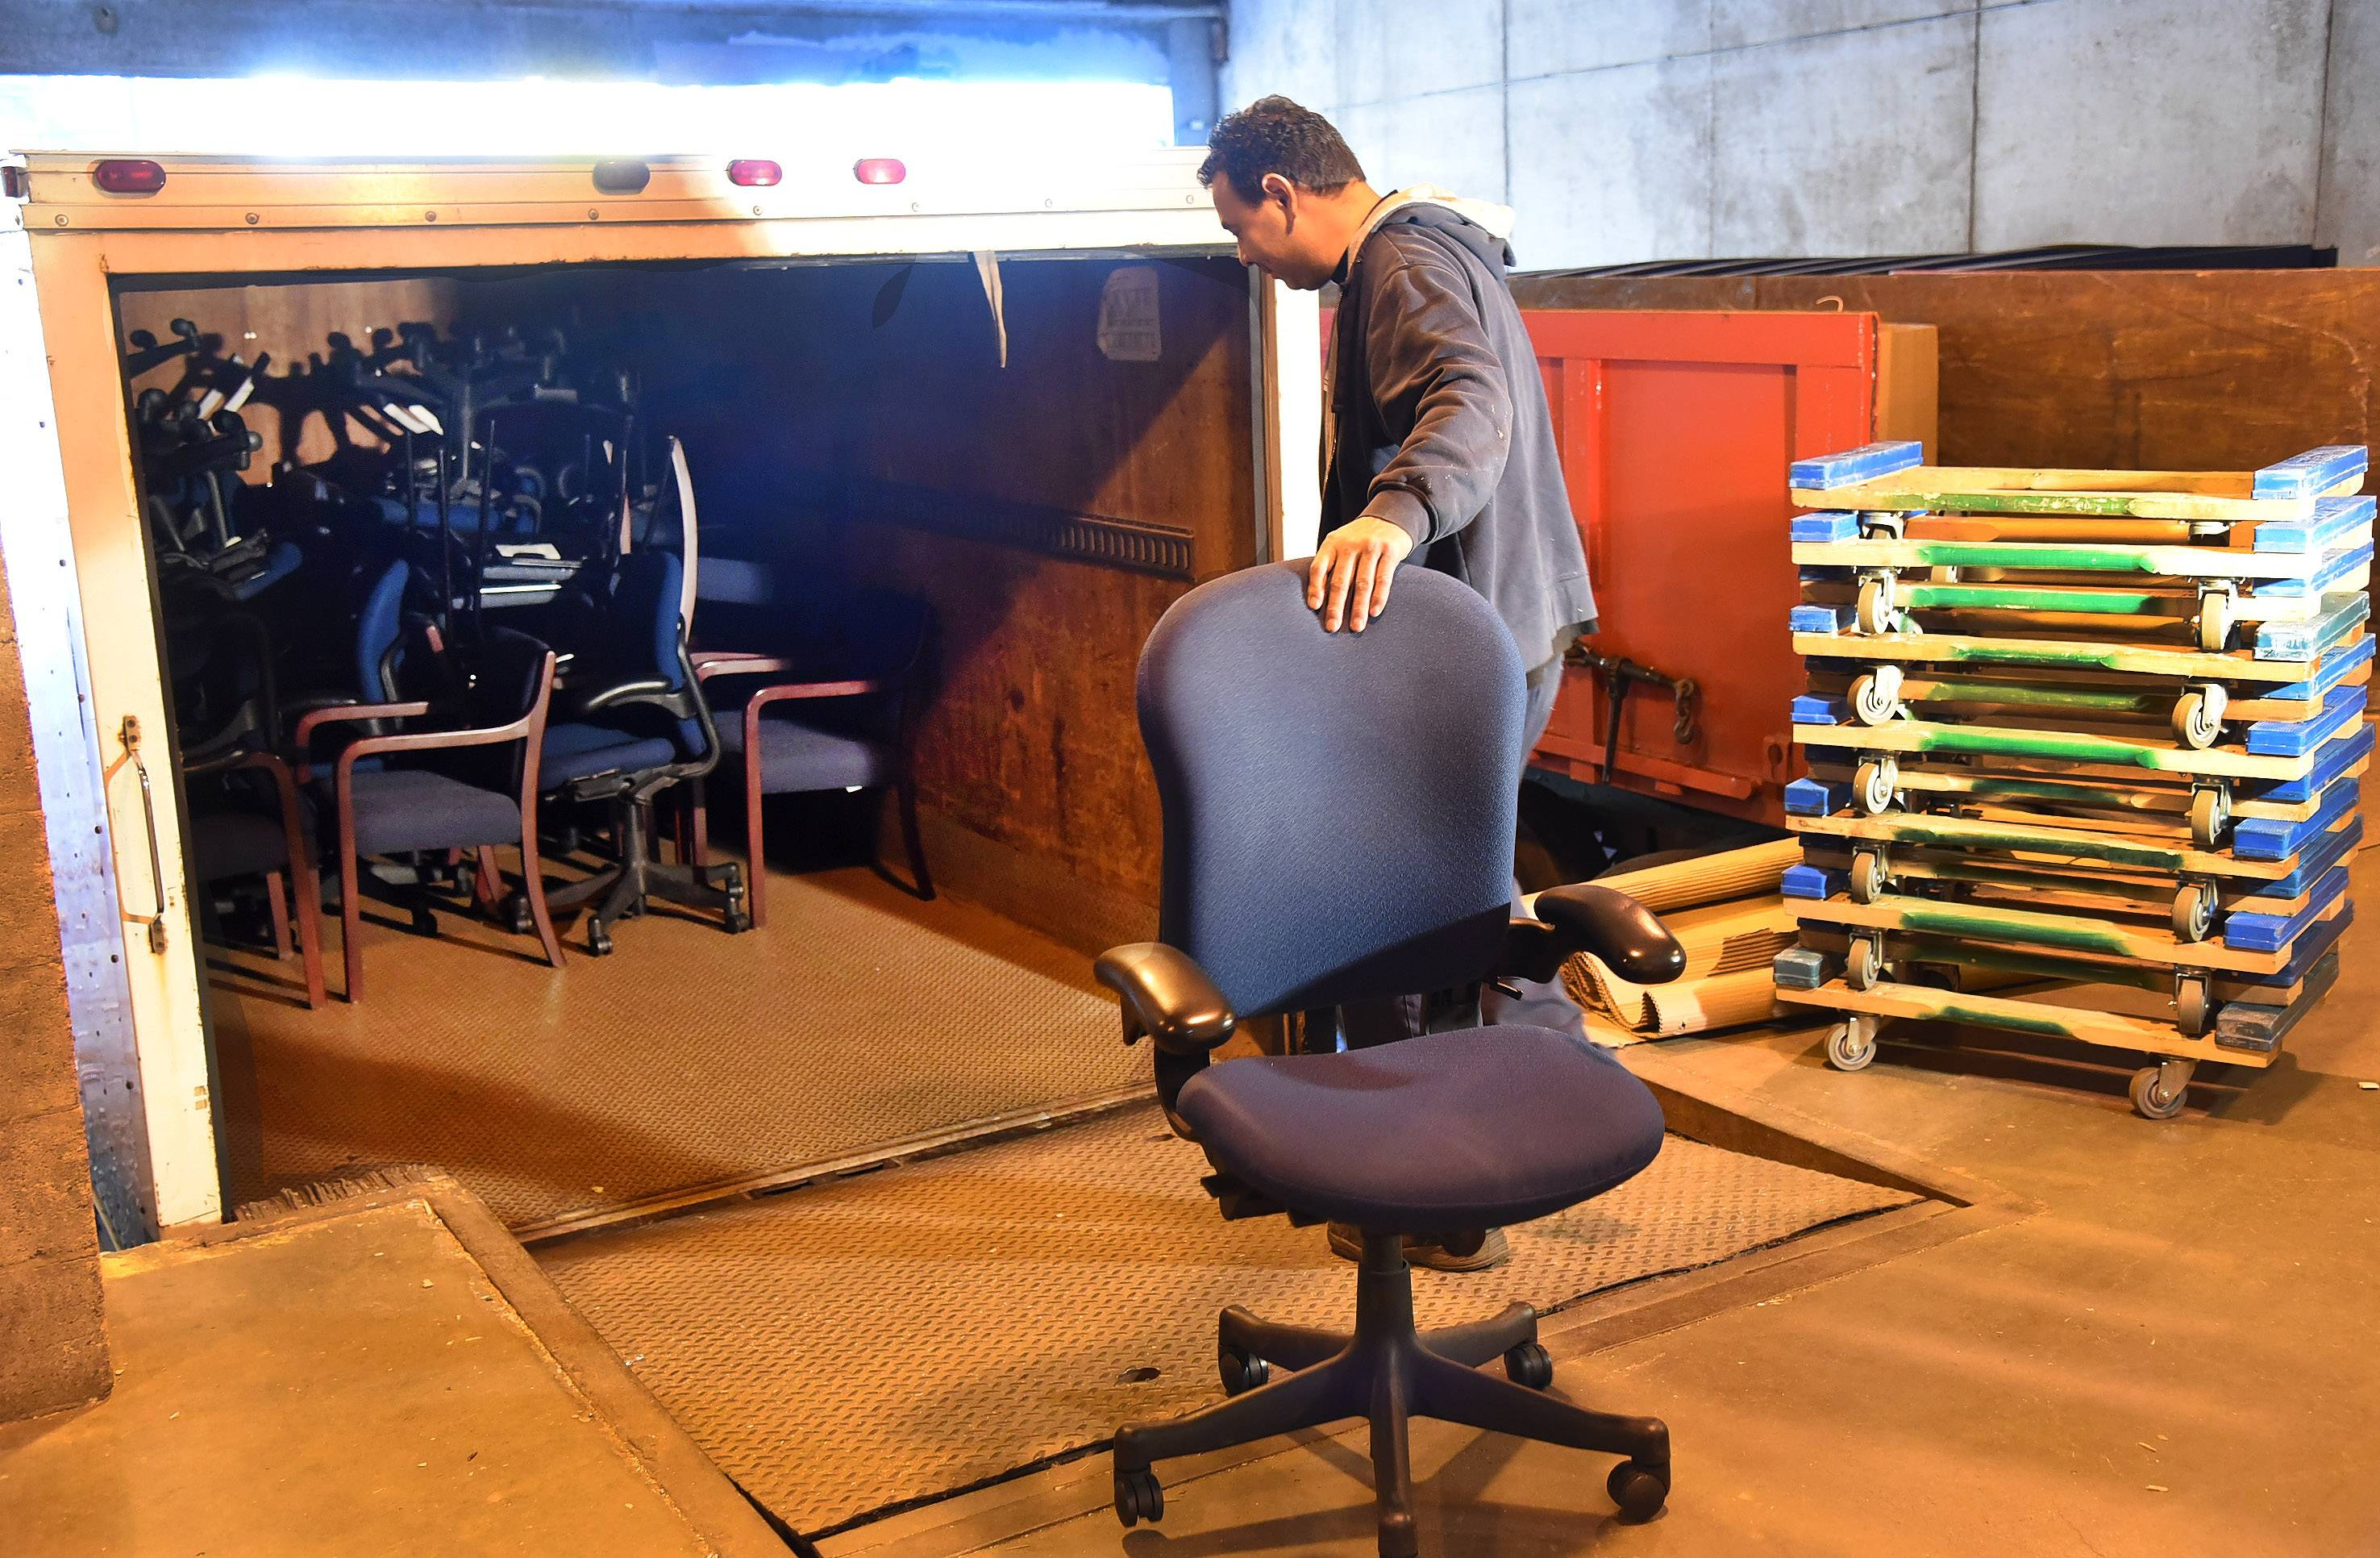 zurich north america donating old furniture to agencies in need